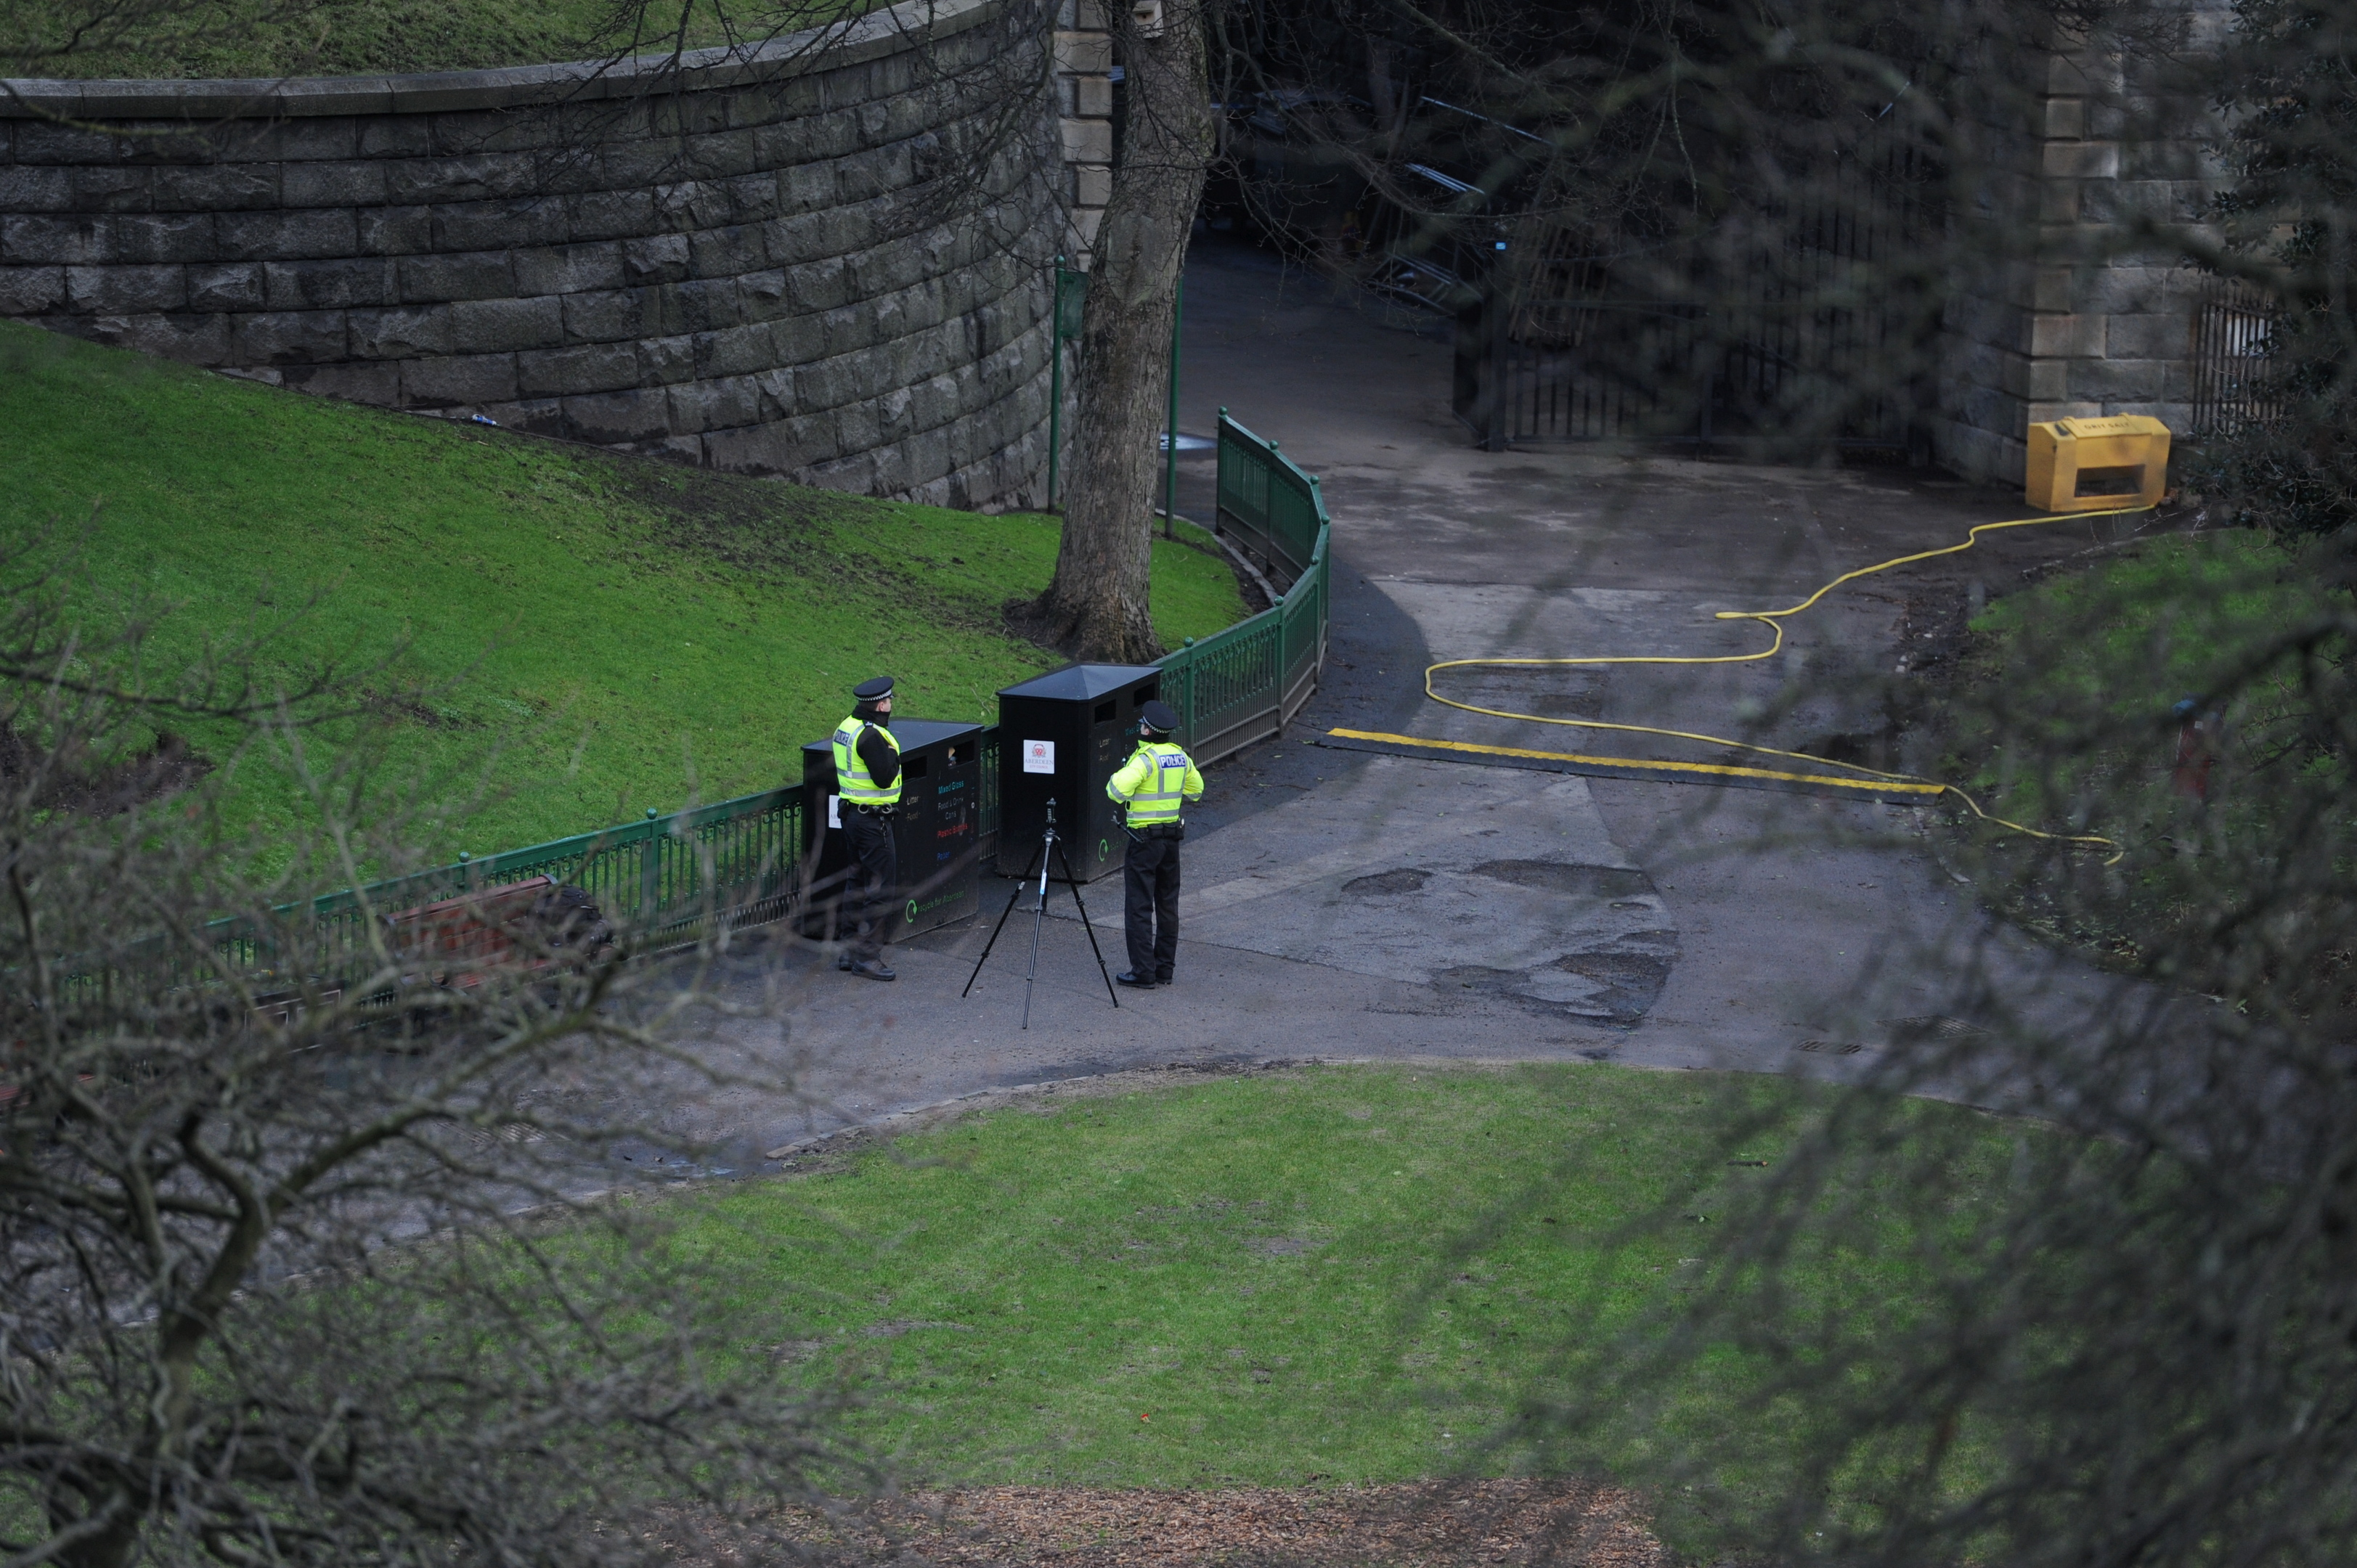 The city centre park was taped off for examinations to be carried out.